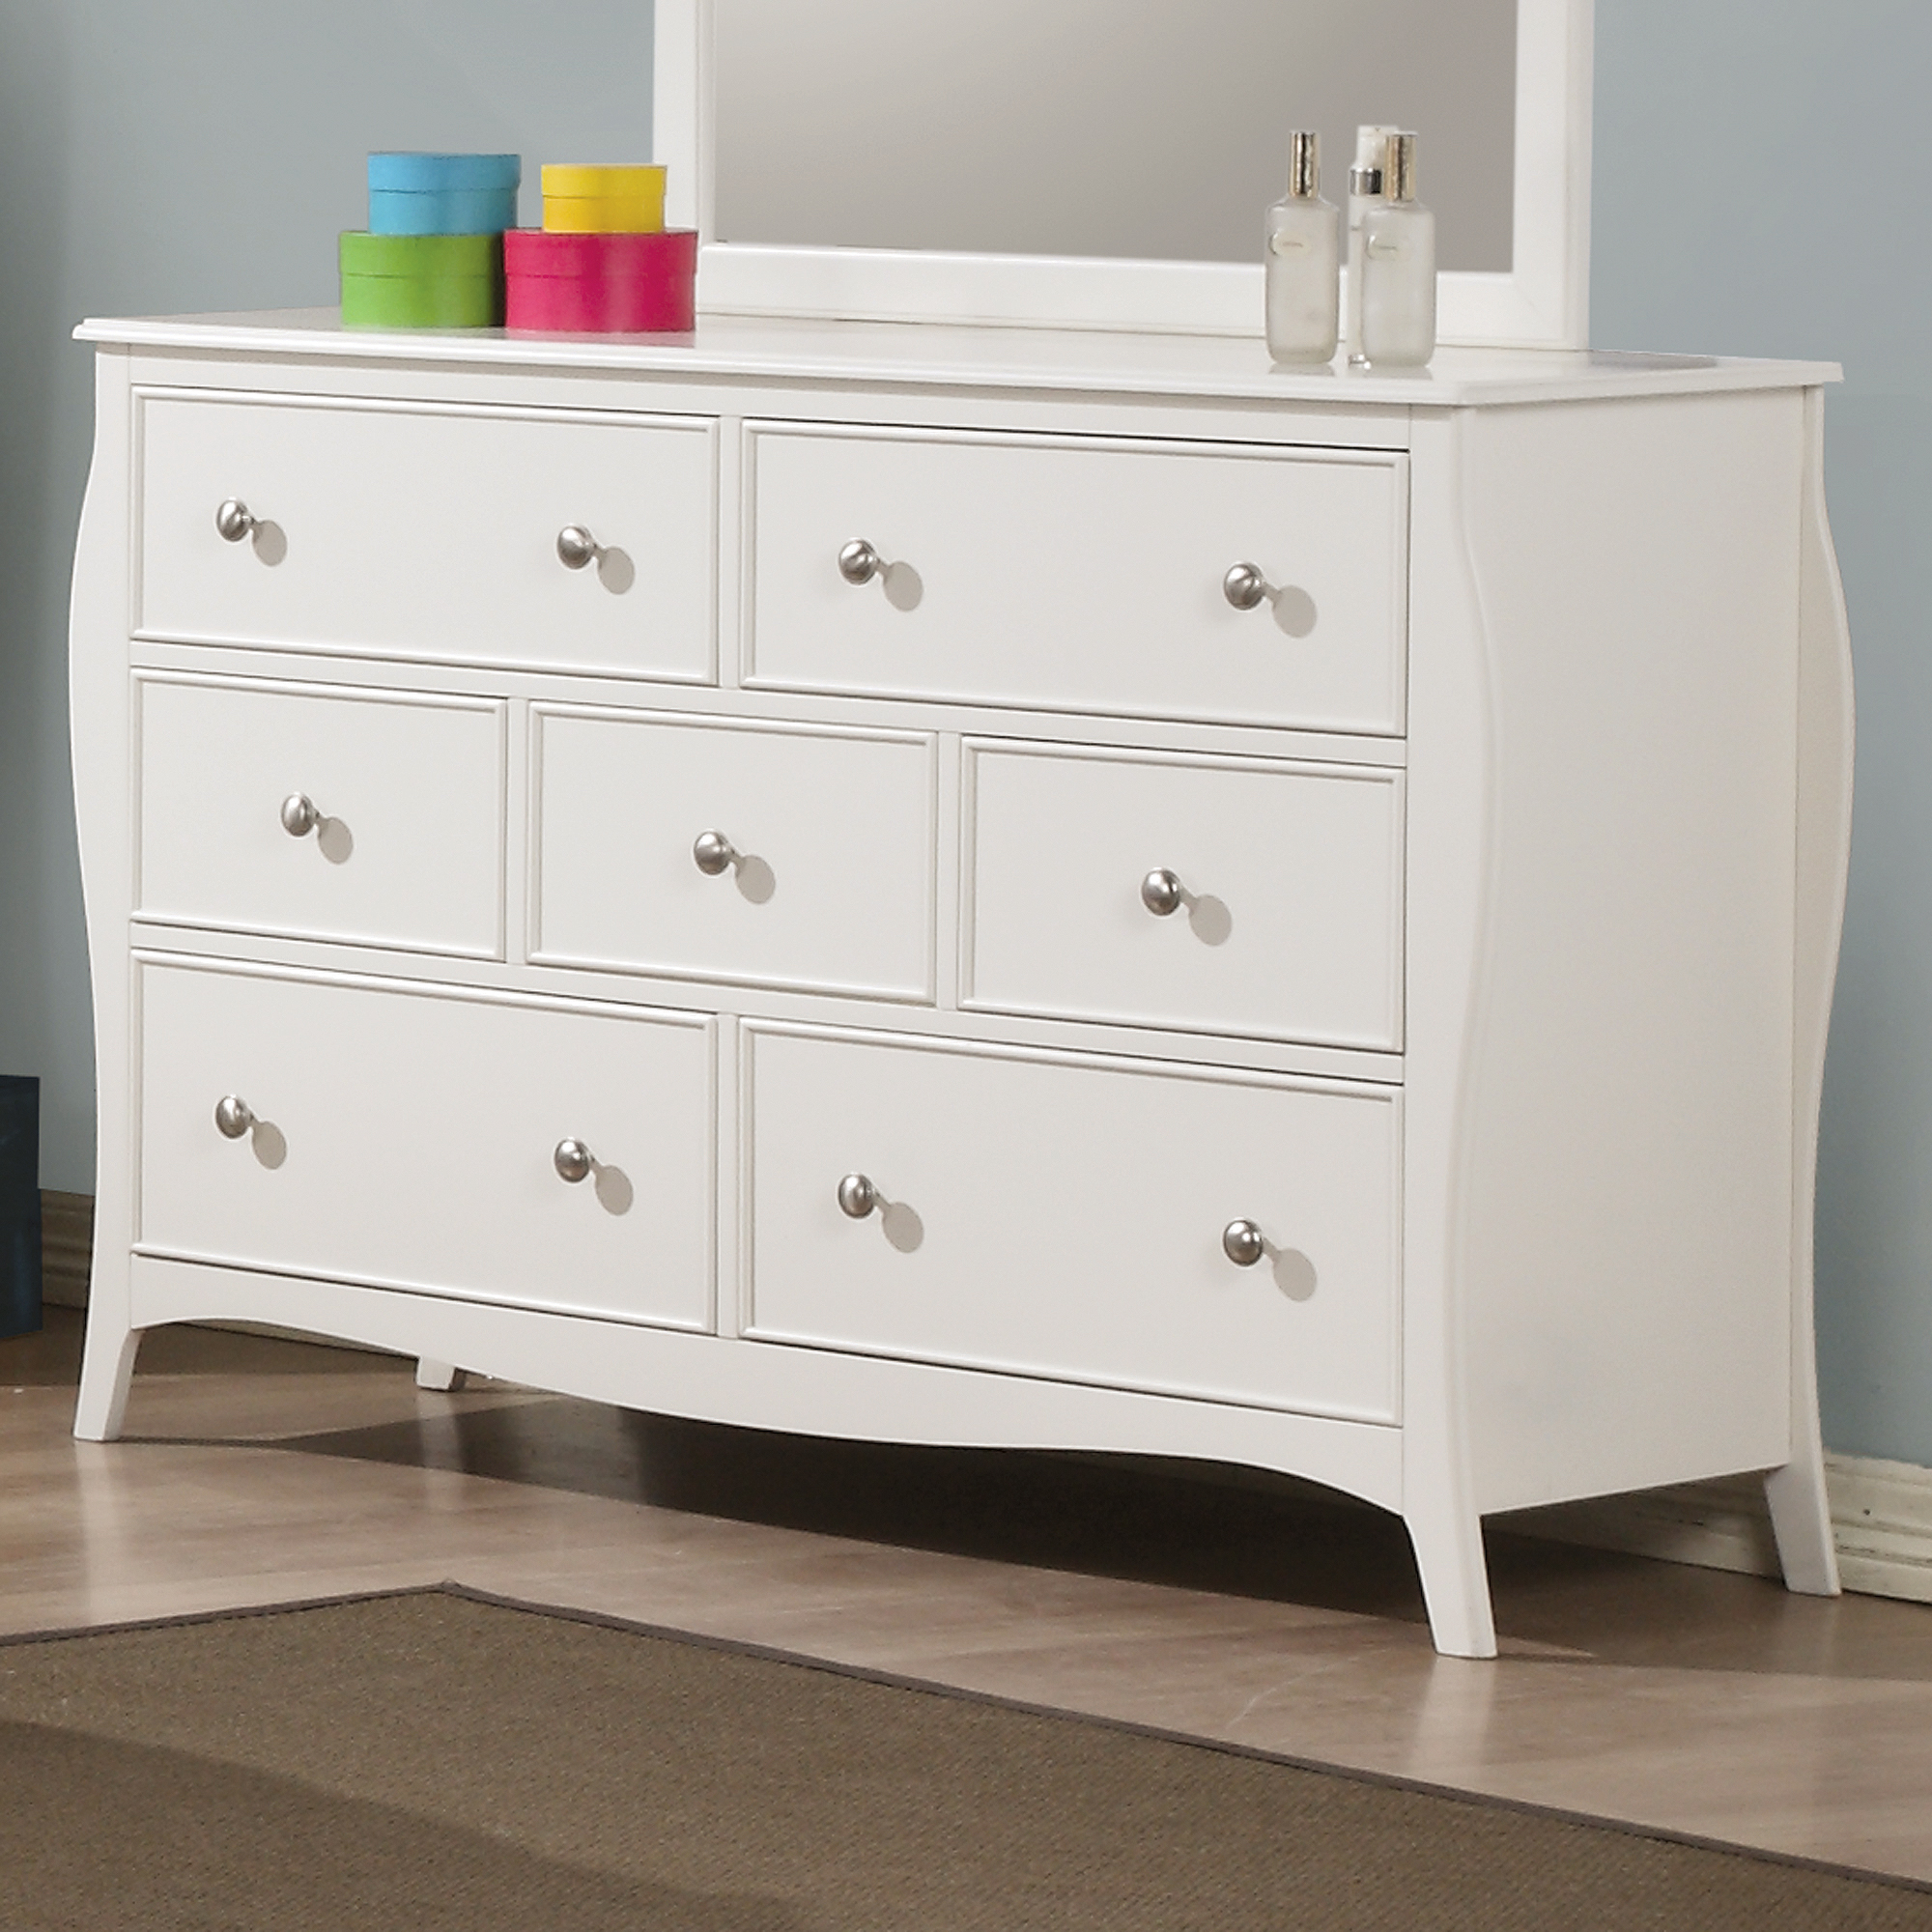 Coaster Dominique Dresser, White by Coaster of America